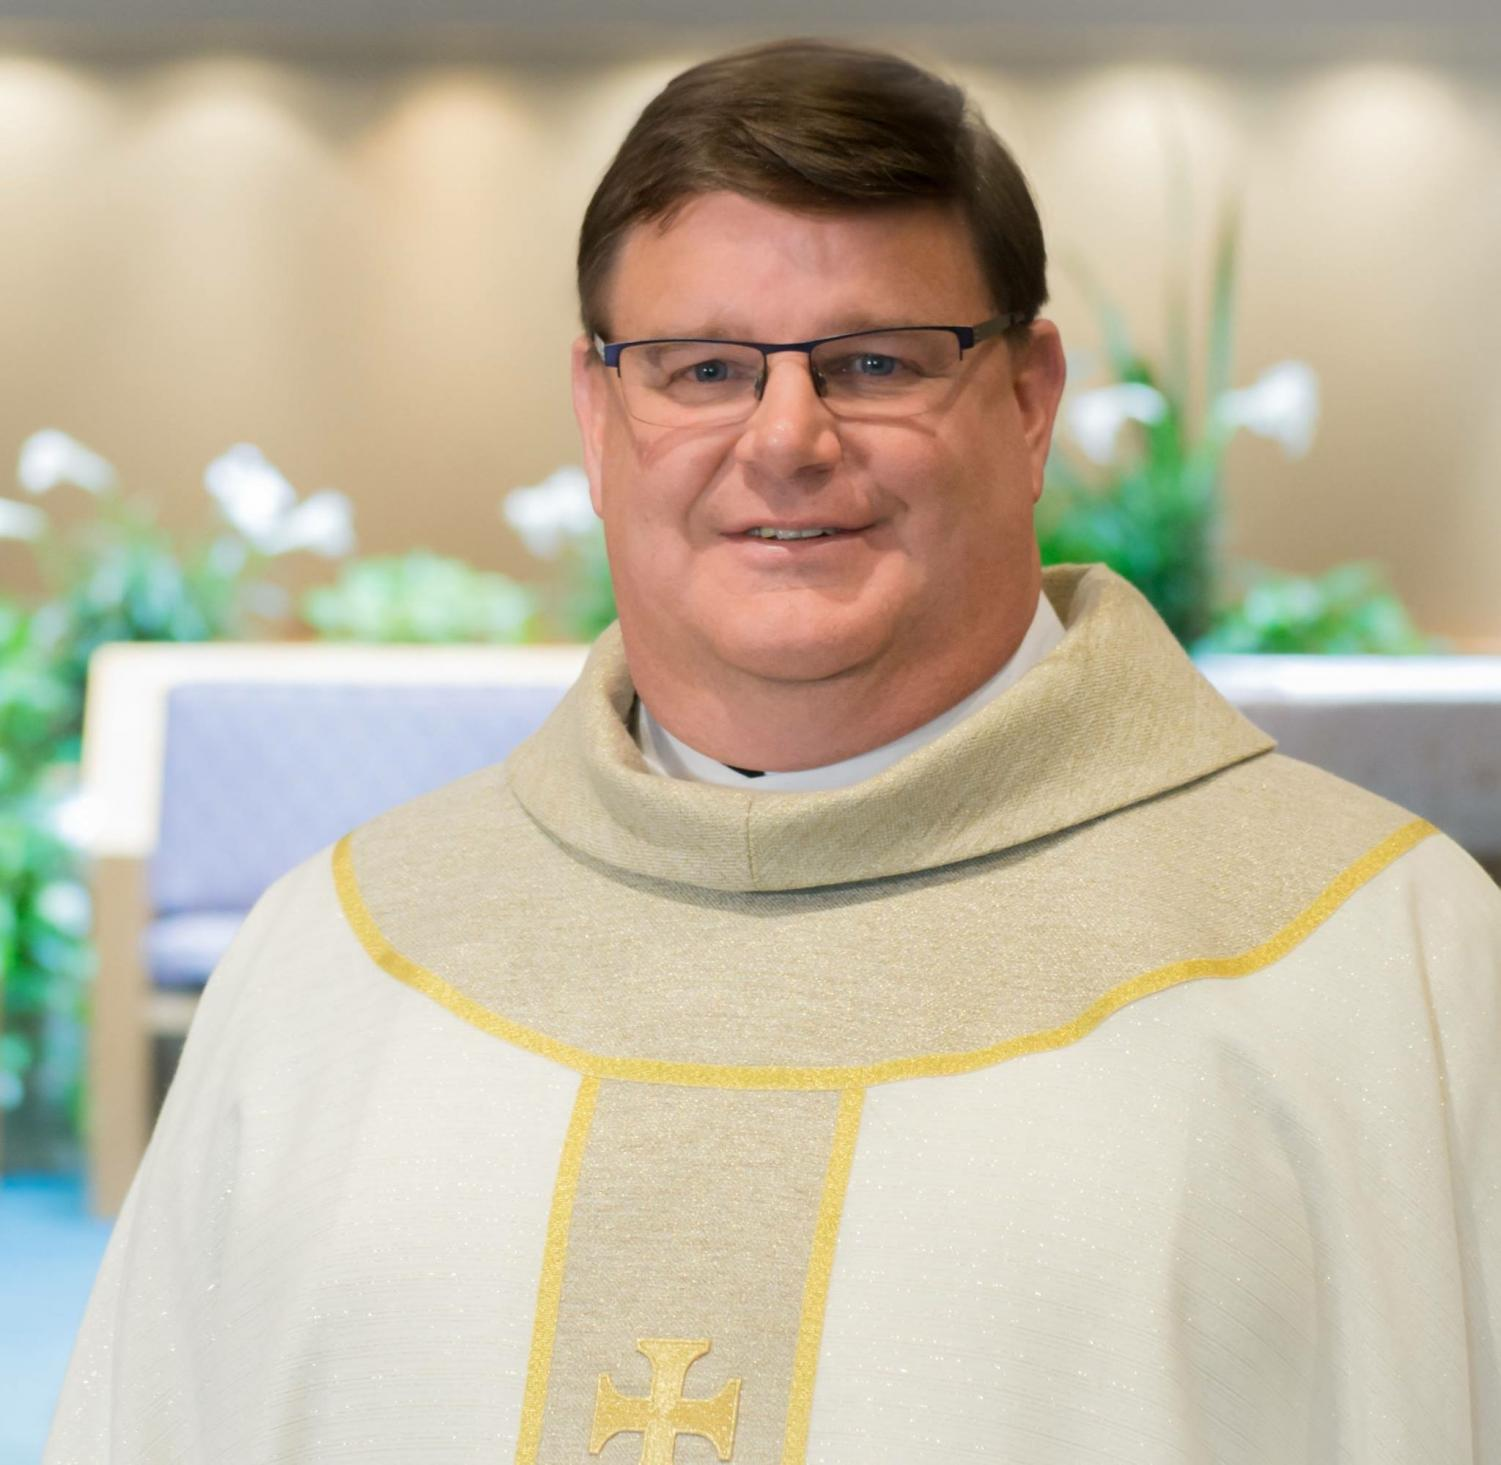 Marquette alum and Catholic priest Gregory Greiten came out as gay Dec. 17. Photo via Facebook.